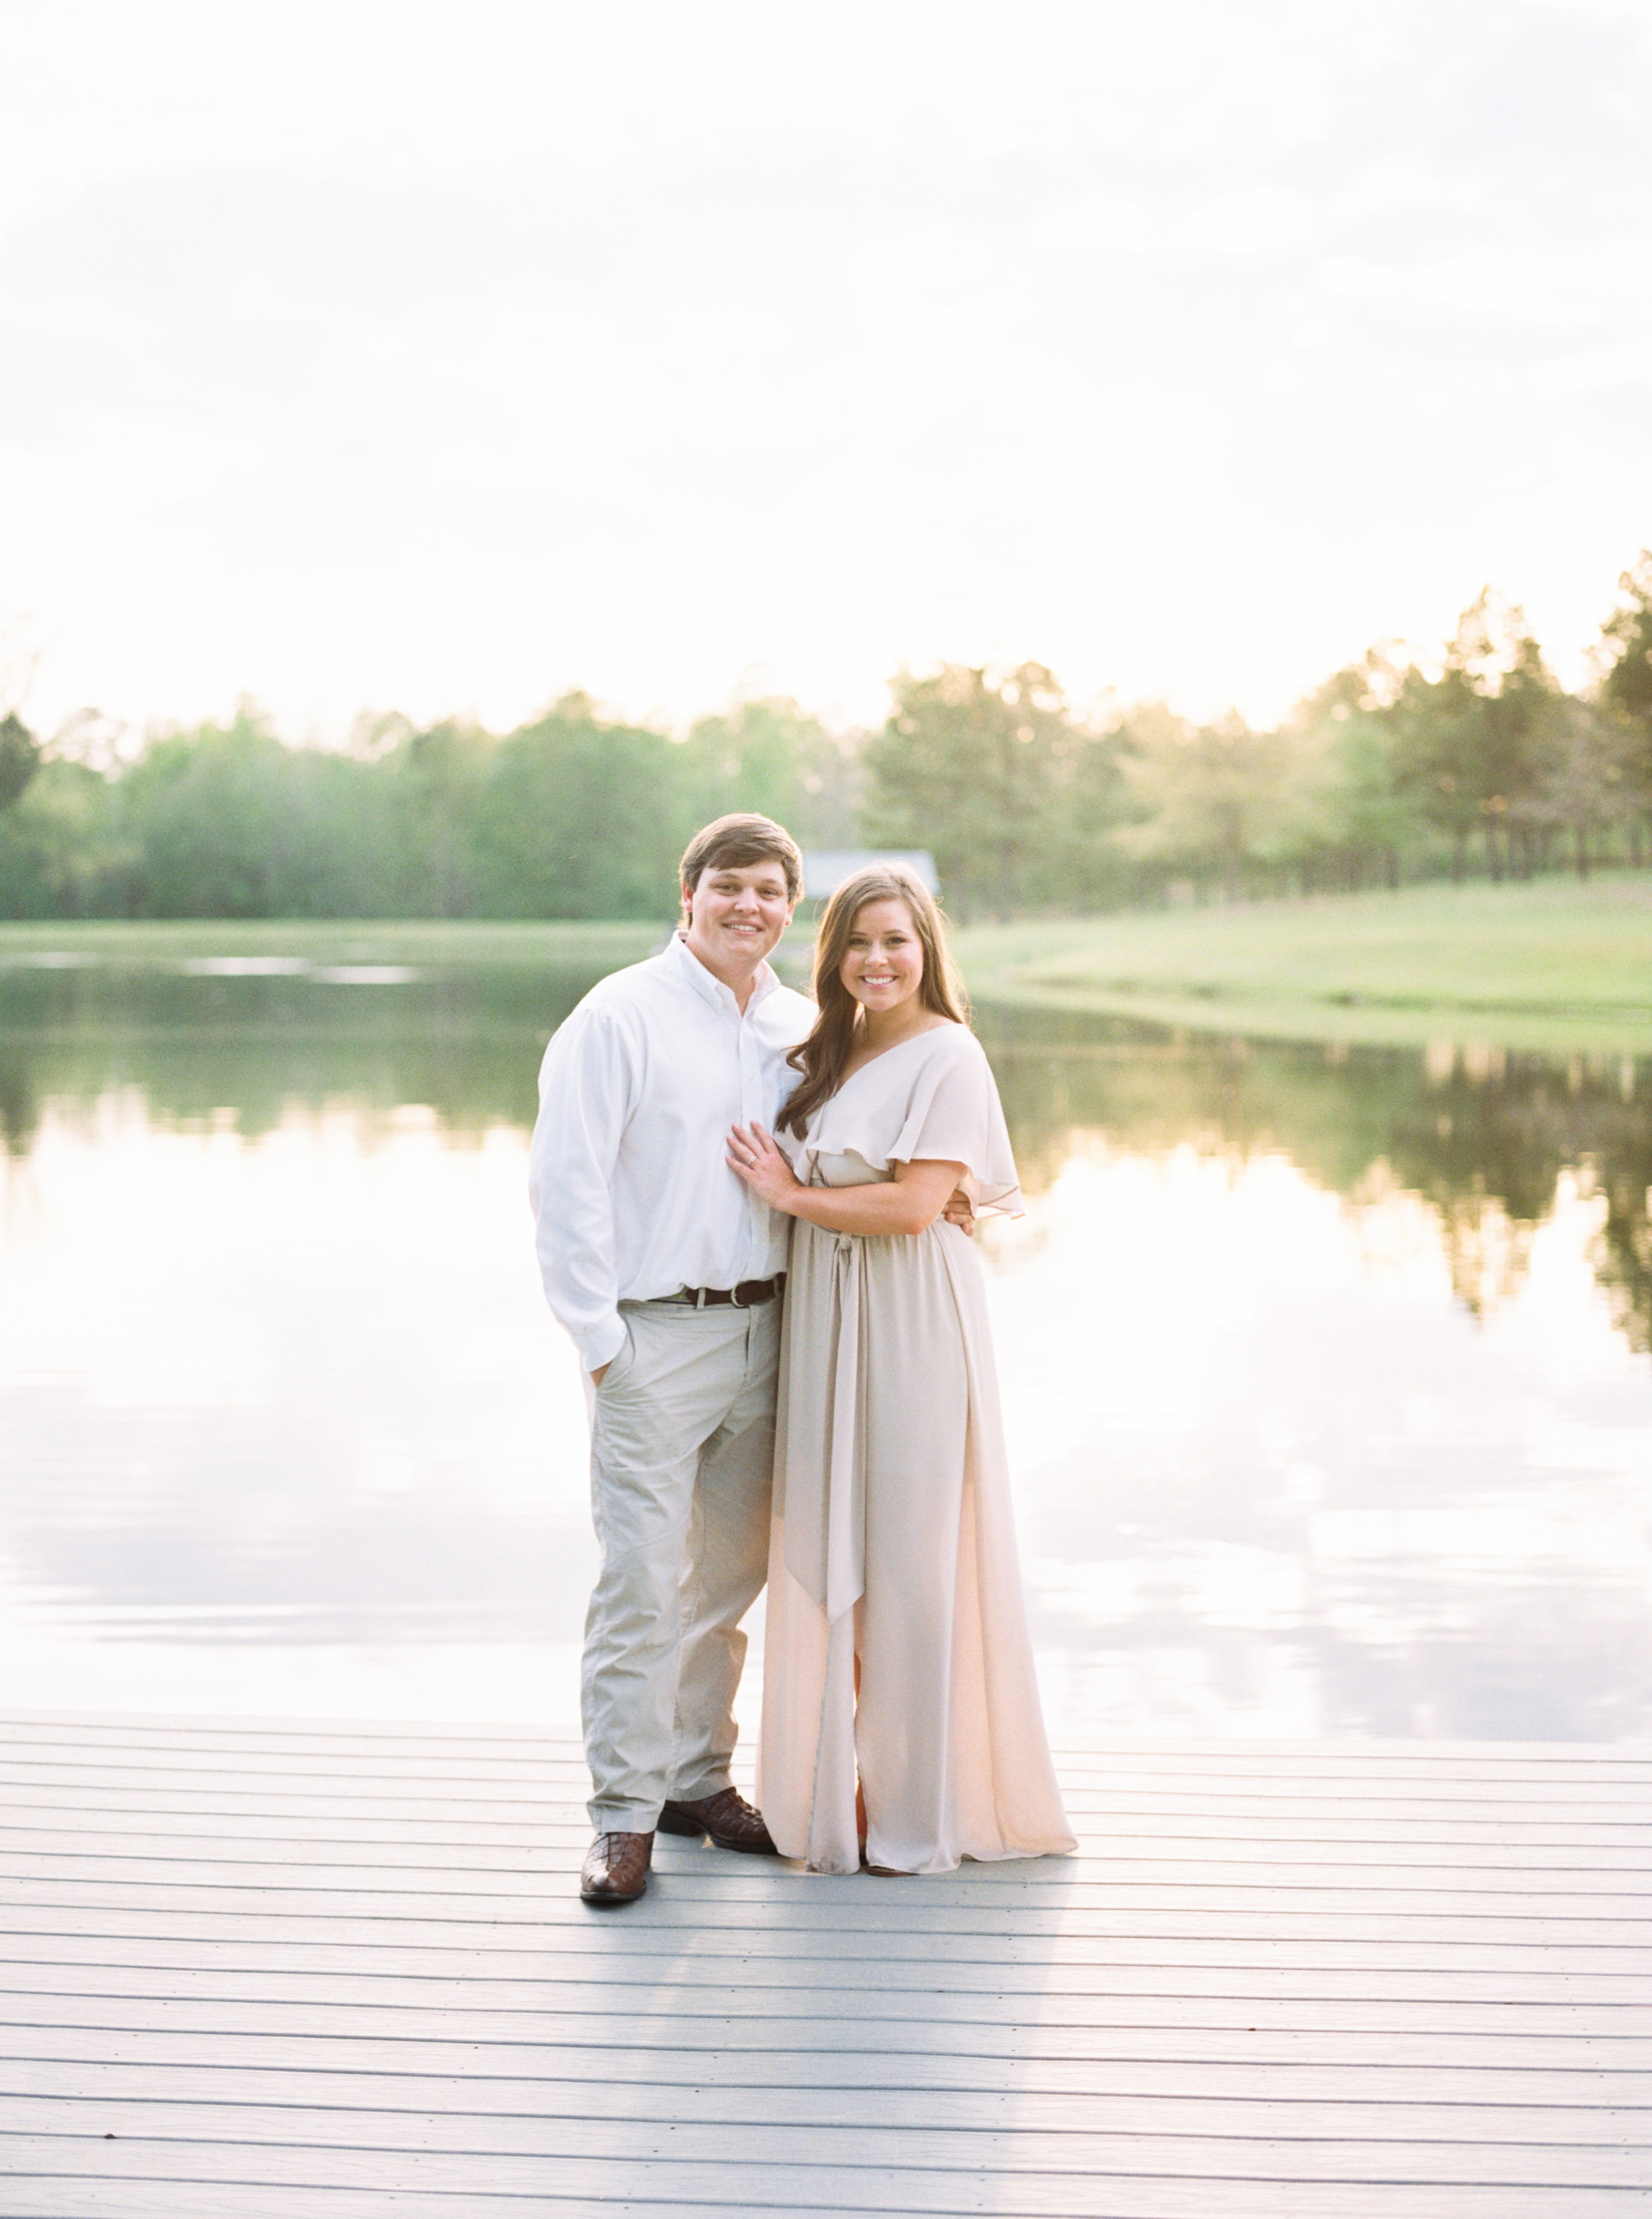 Landon_Grant_Carter_Film_Engagement_Session_Lake_Fallen_Photography_Columbus_Georgia-62.JPG